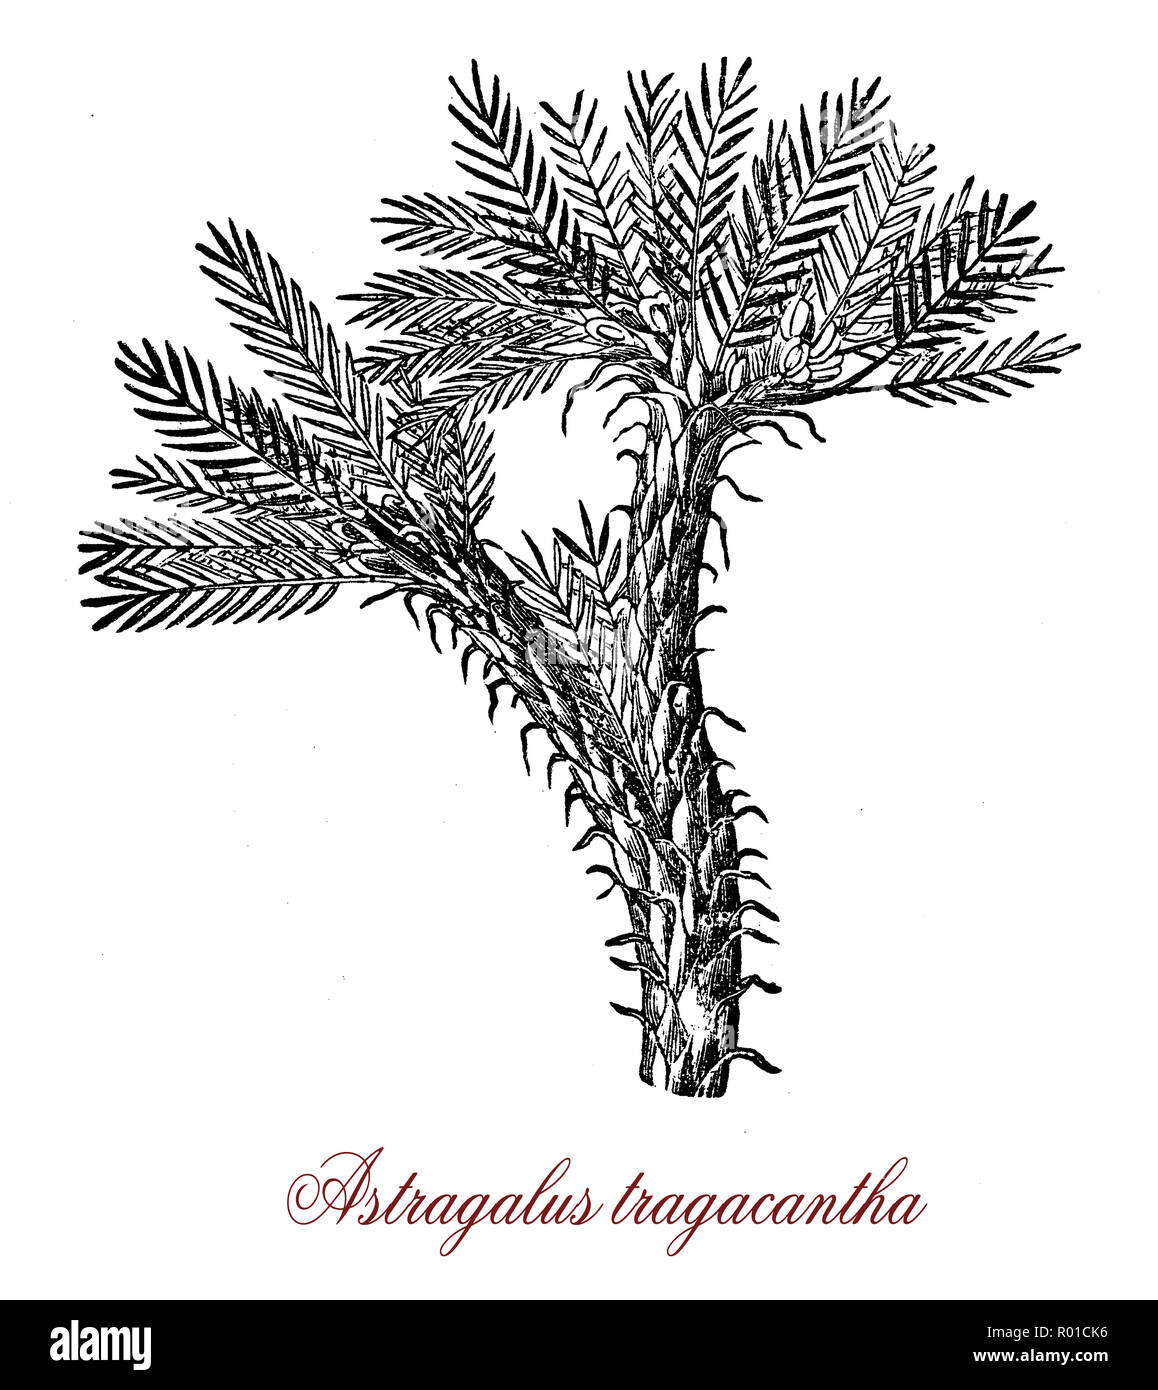 Vintage botanical engraving of astragalus tragacantha, a milkvetch growing in sandy soil around the Mediterranean beaches, origin of natural gum tragacanth, made with dried sap. - Stock Image